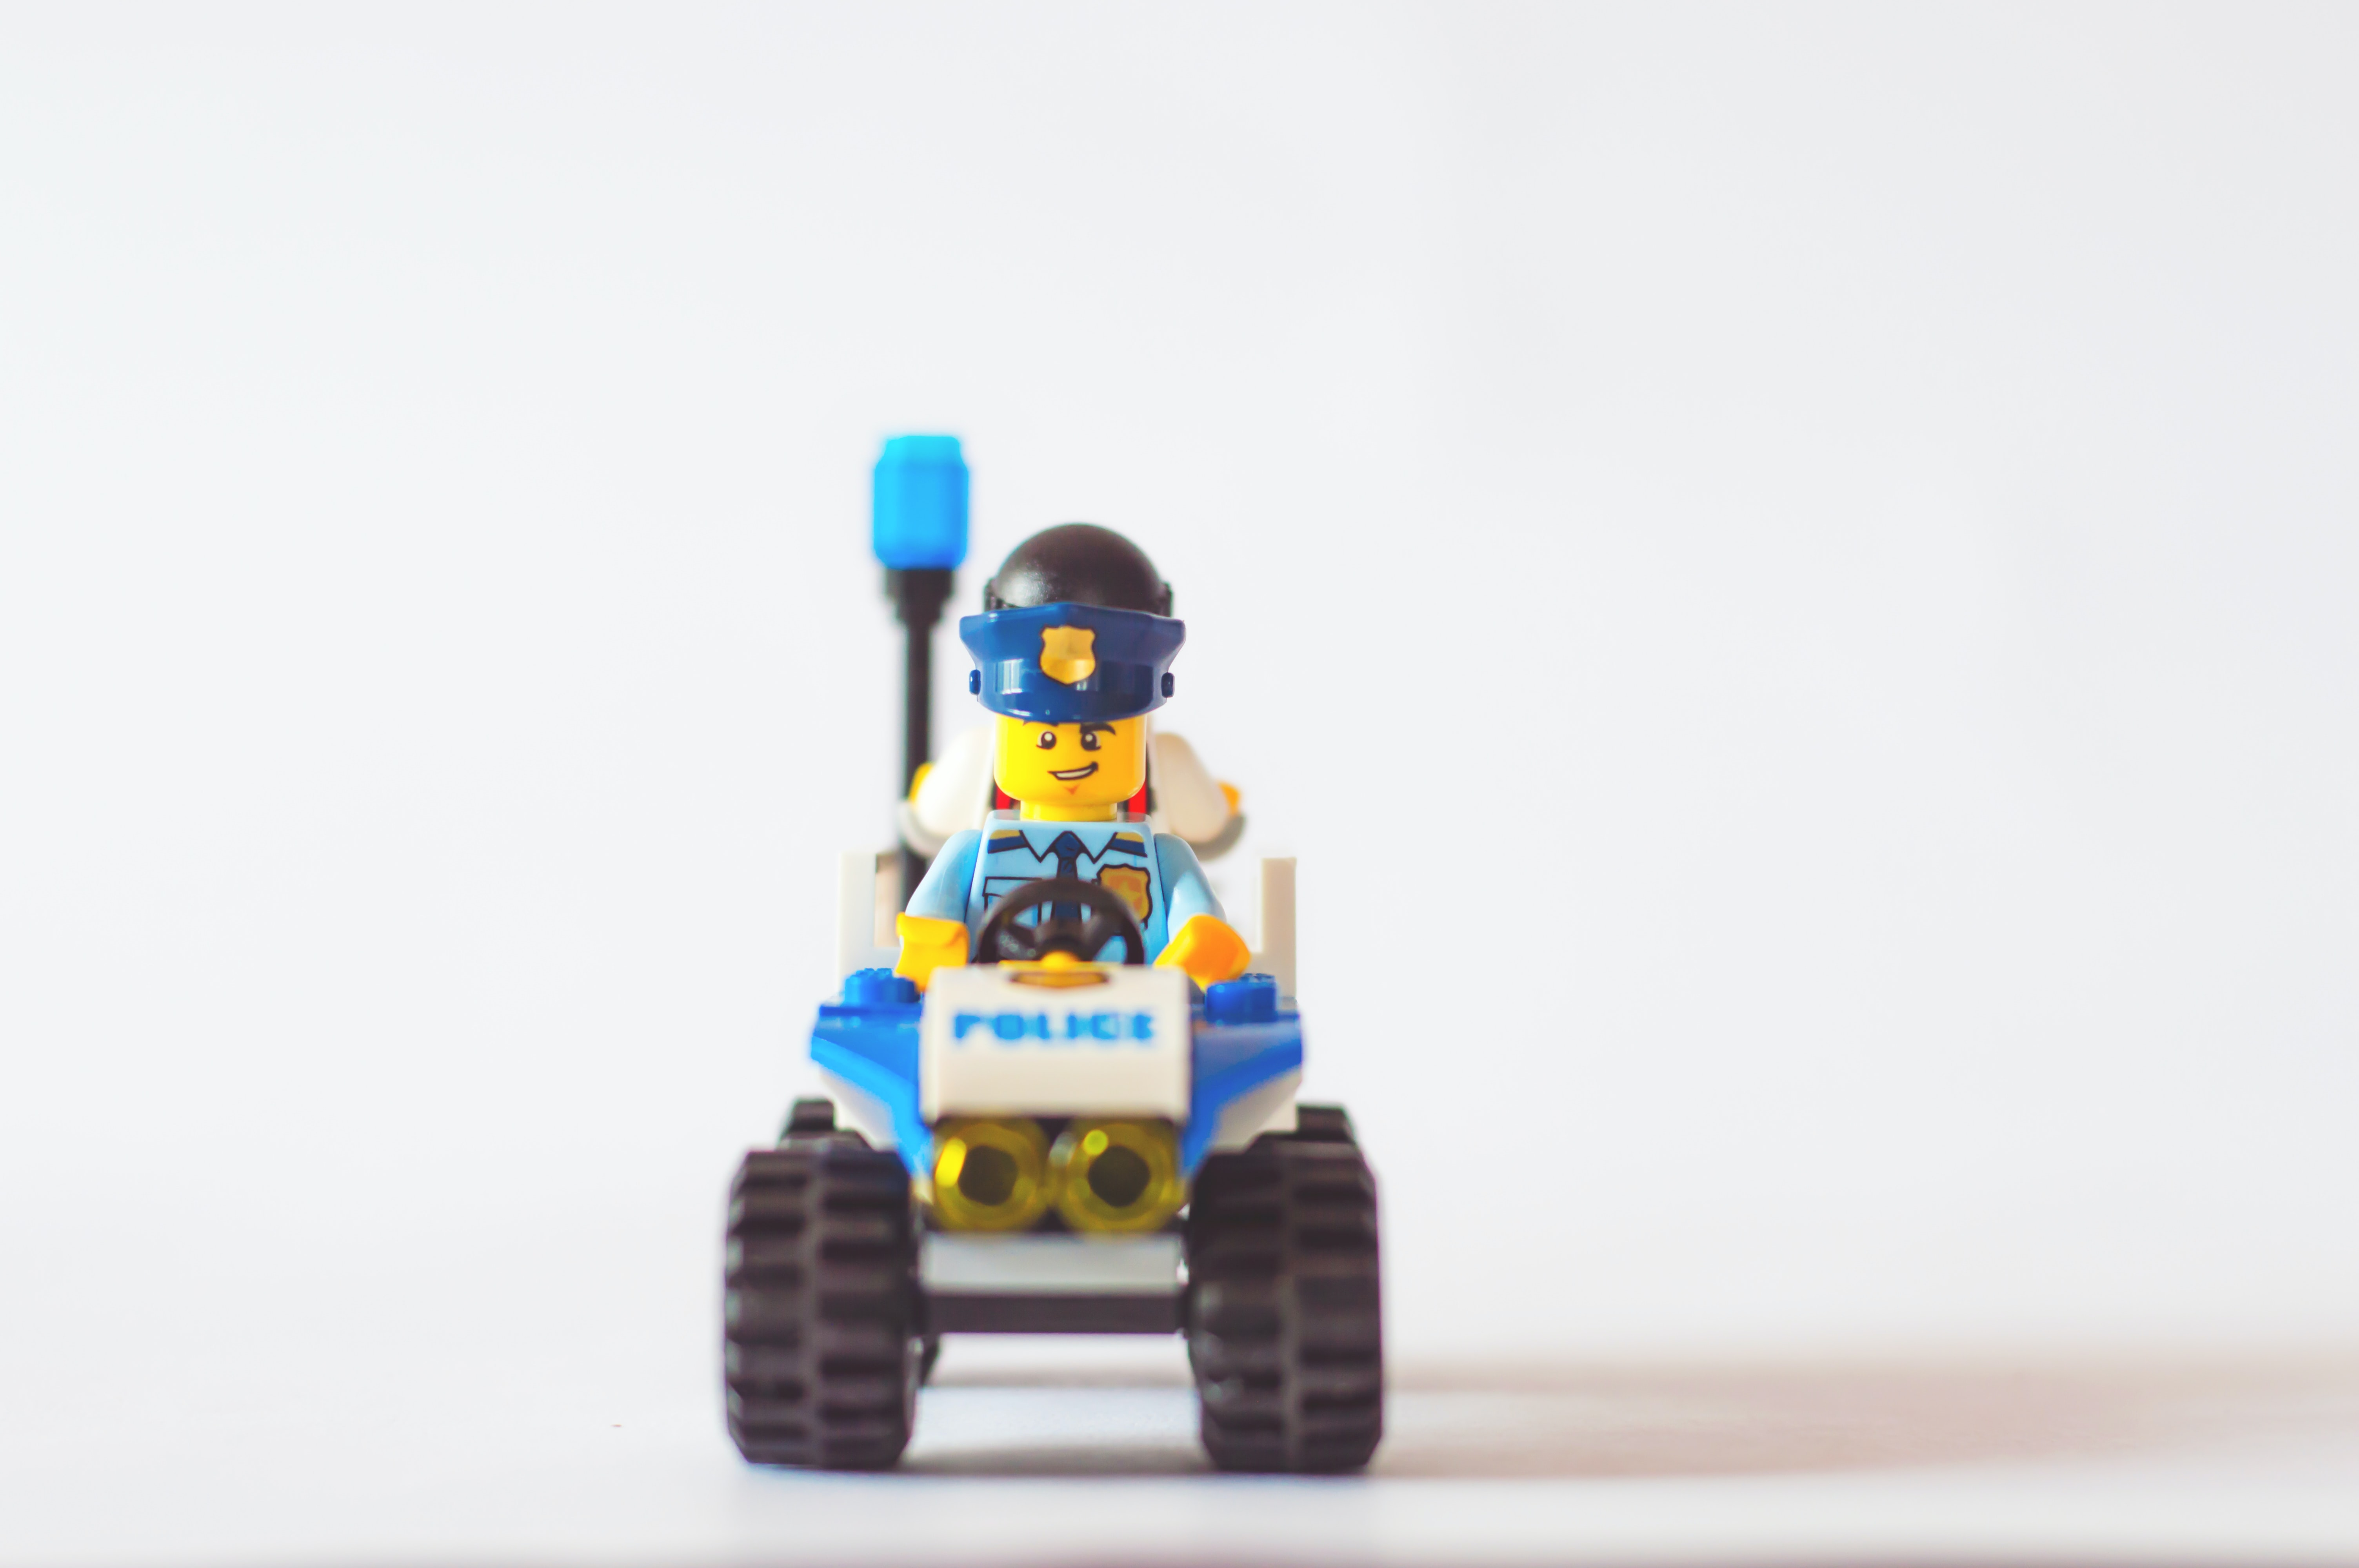 A little Lego character on a Lego vehicle.